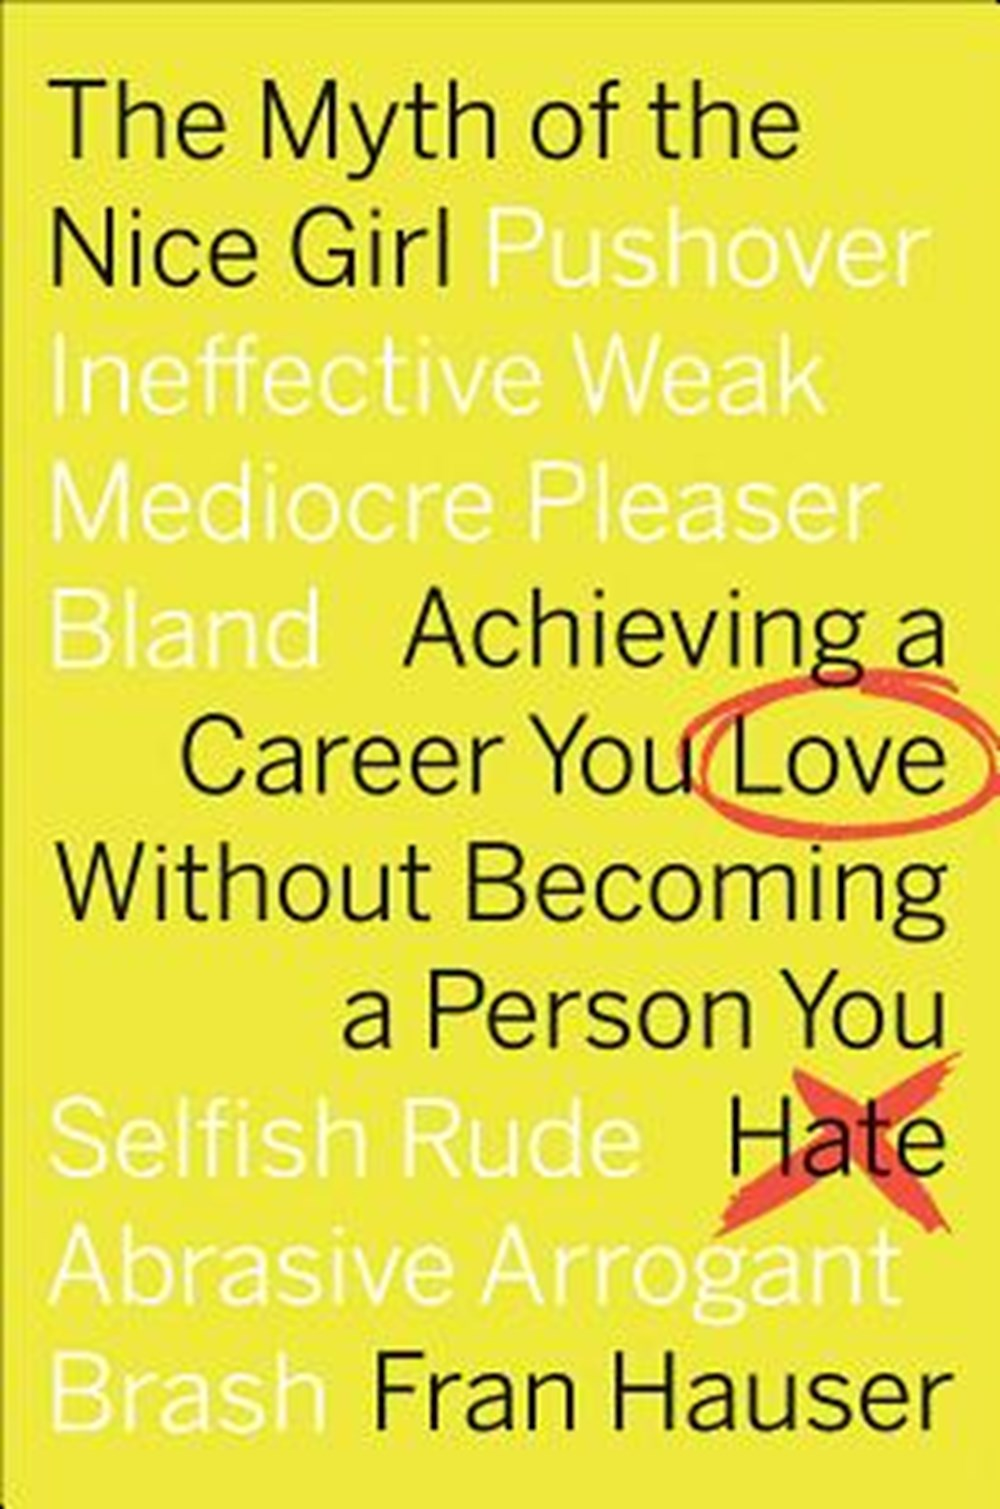 Myth of the Nice Girl Achieving a Career You Love Without Becoming a Person You Hate